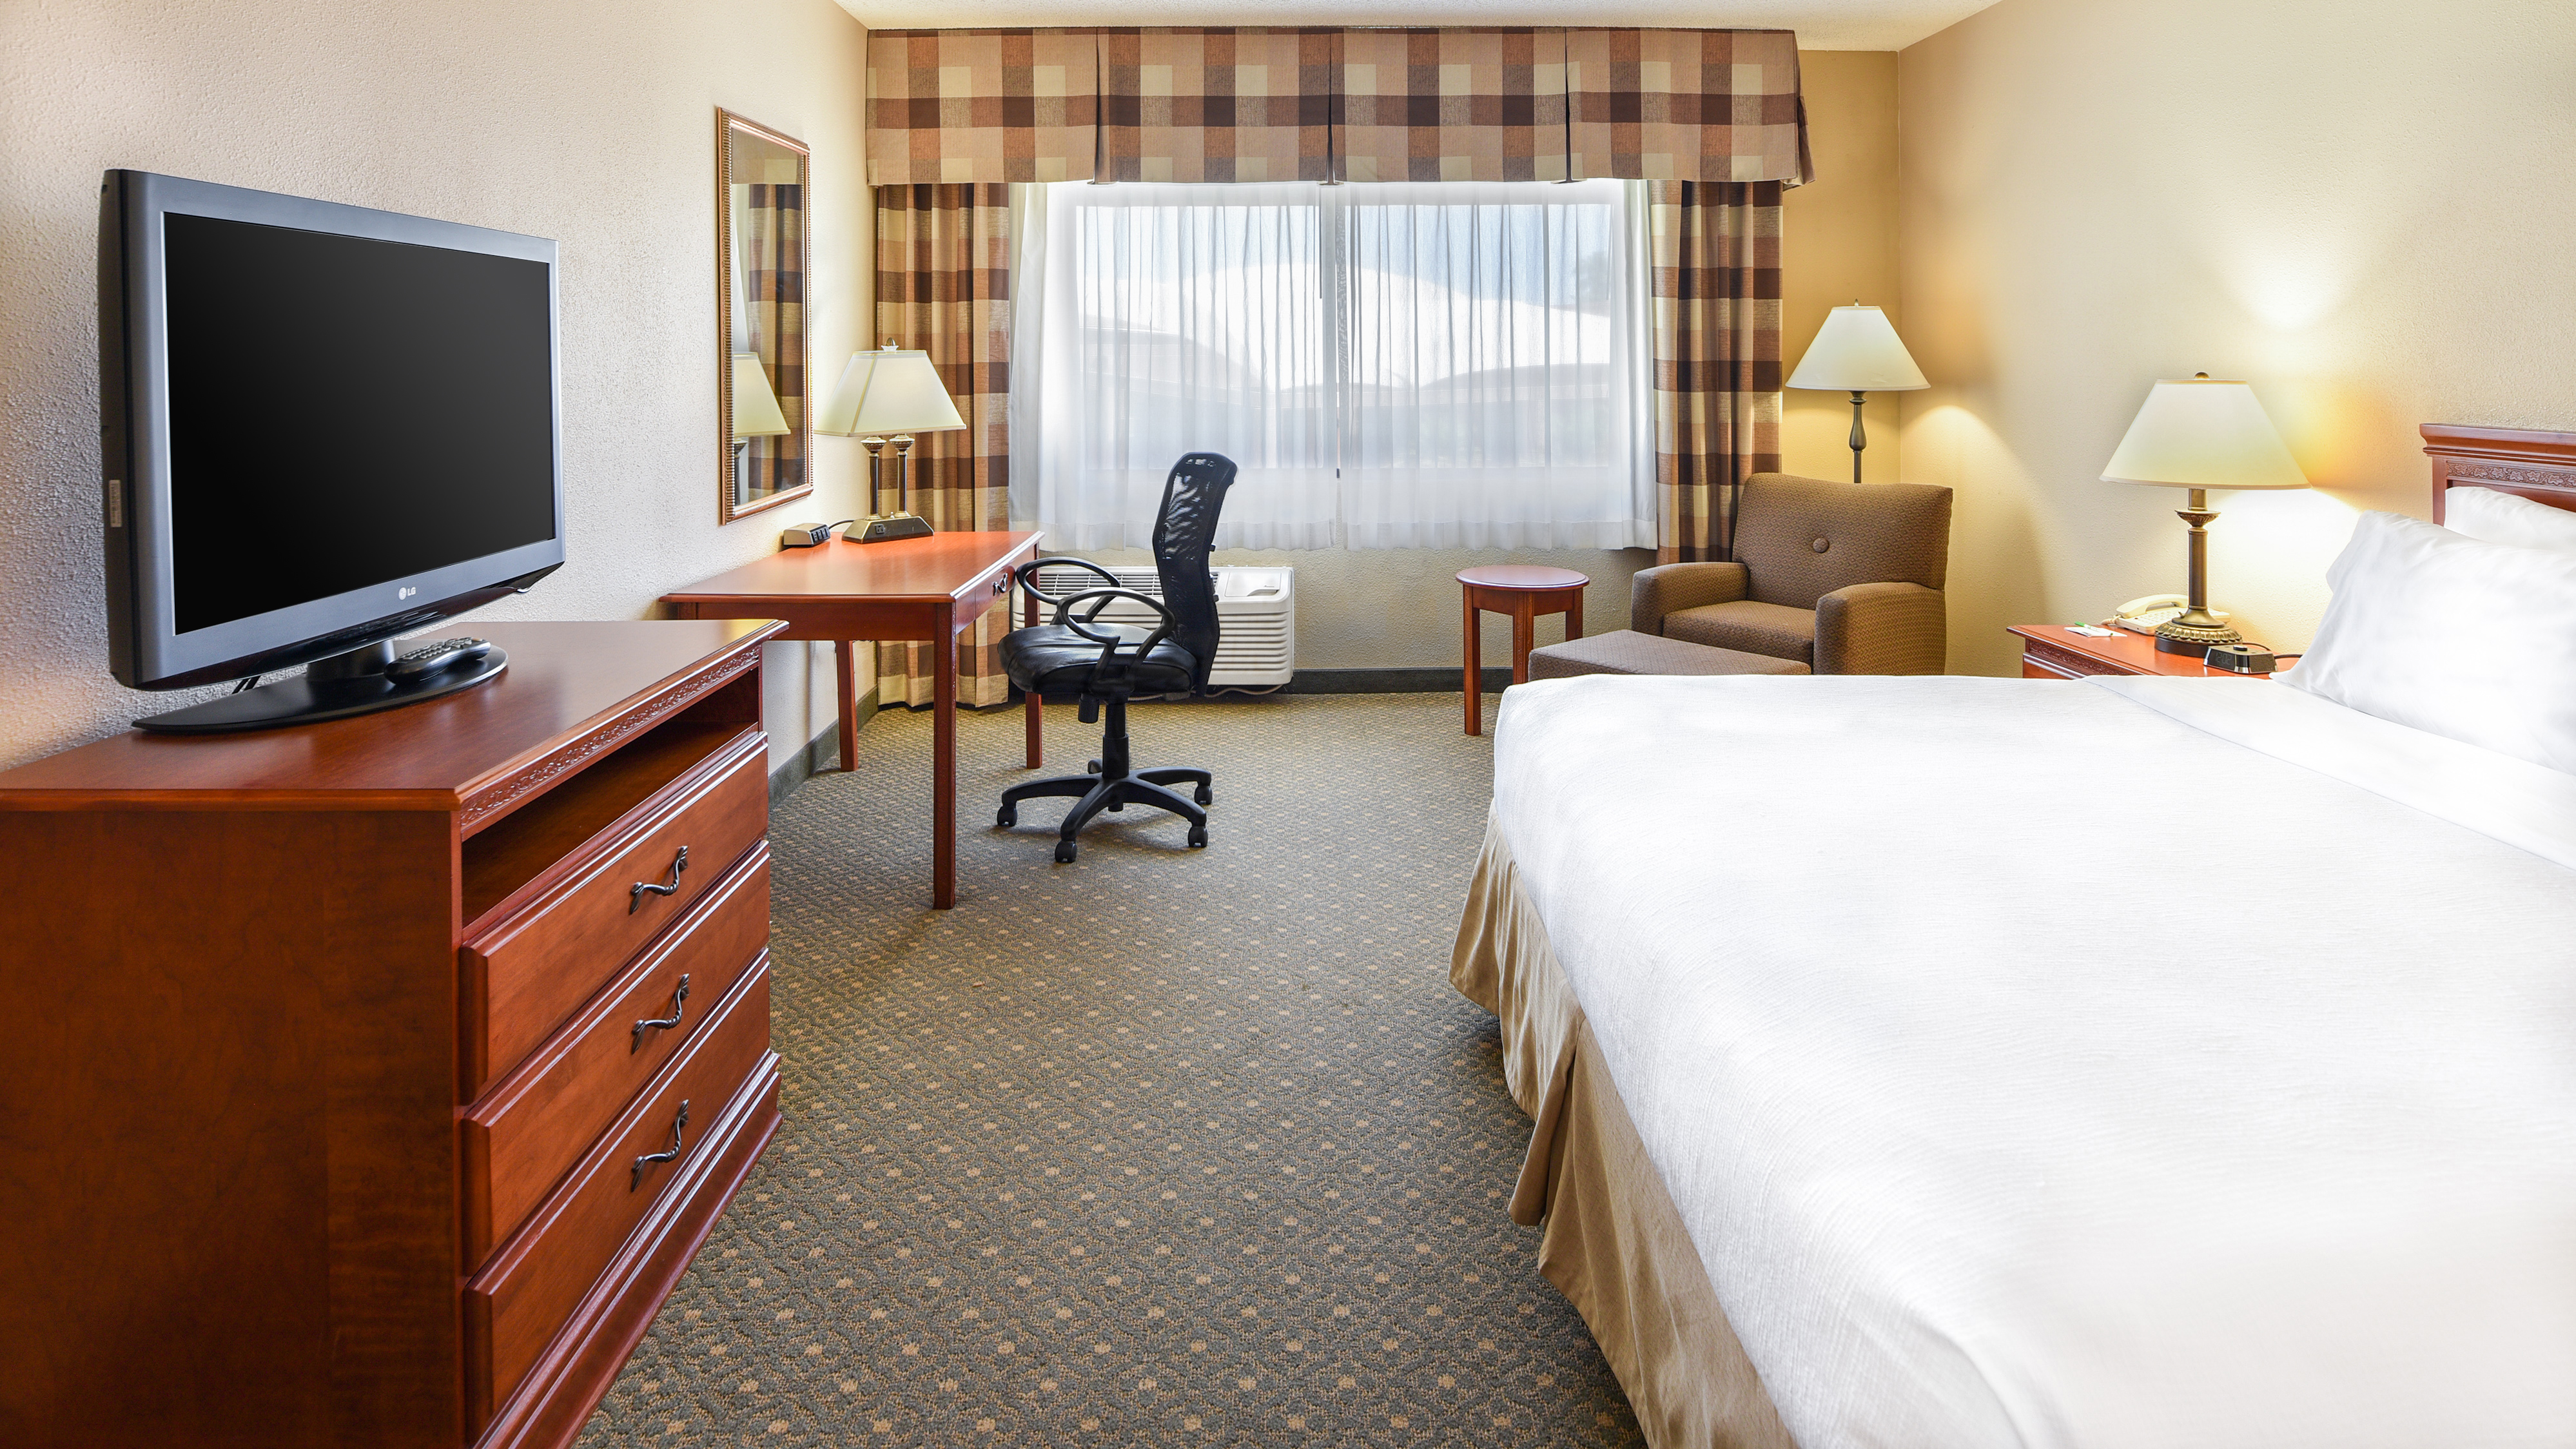 https://www.hotelsbyday.com/_data/default-hotel_image/2/10050/holiday-inn-casa-grande-46.jpg